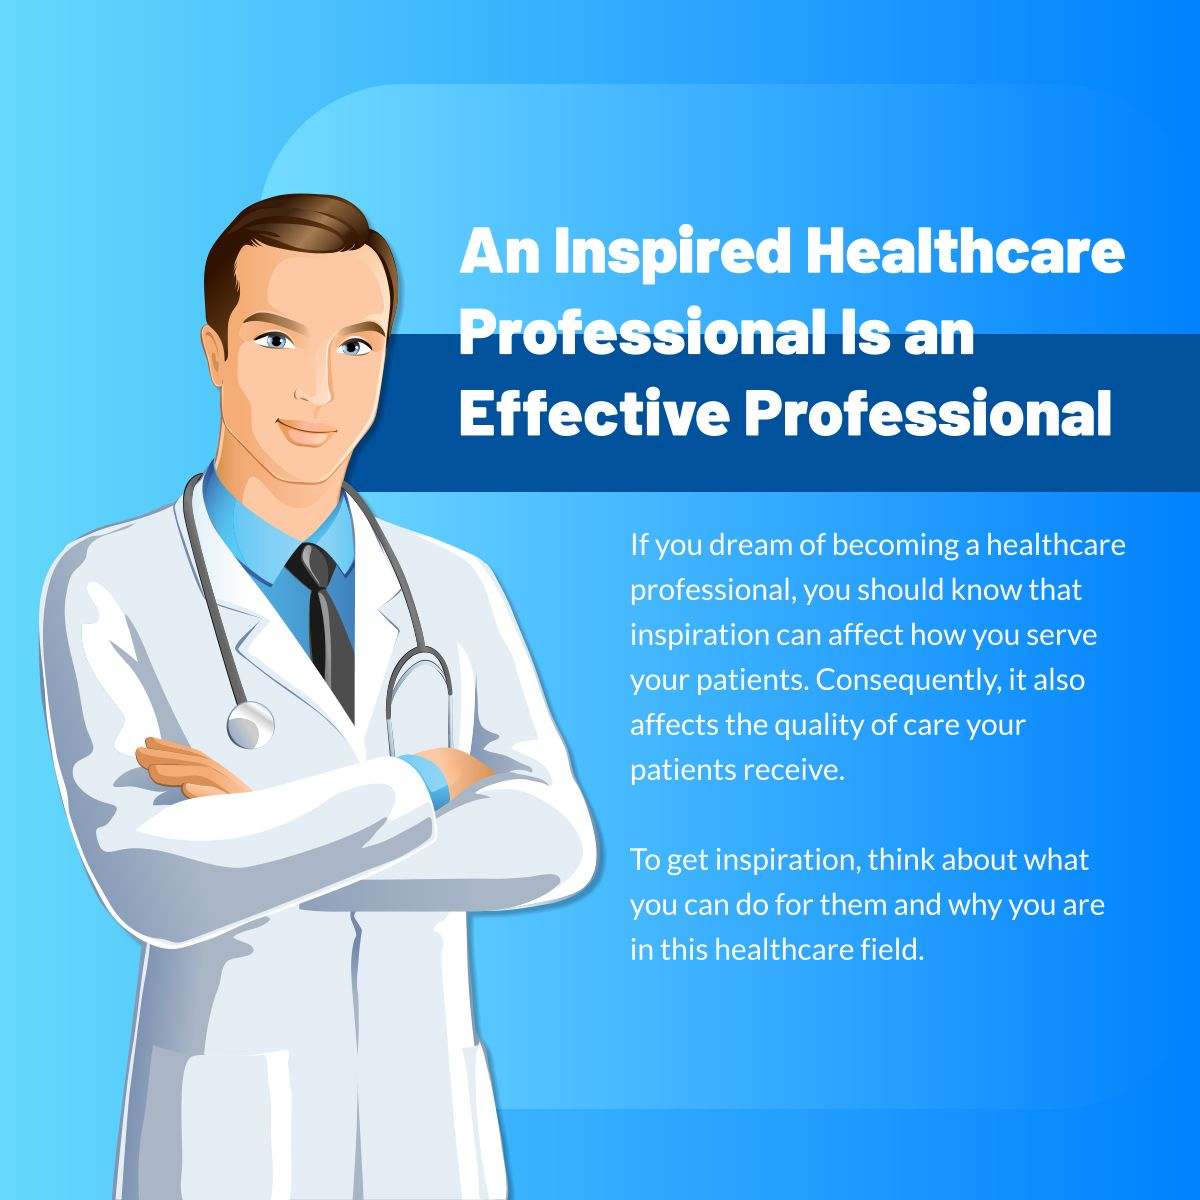 An inspired healthcare professional is an effective